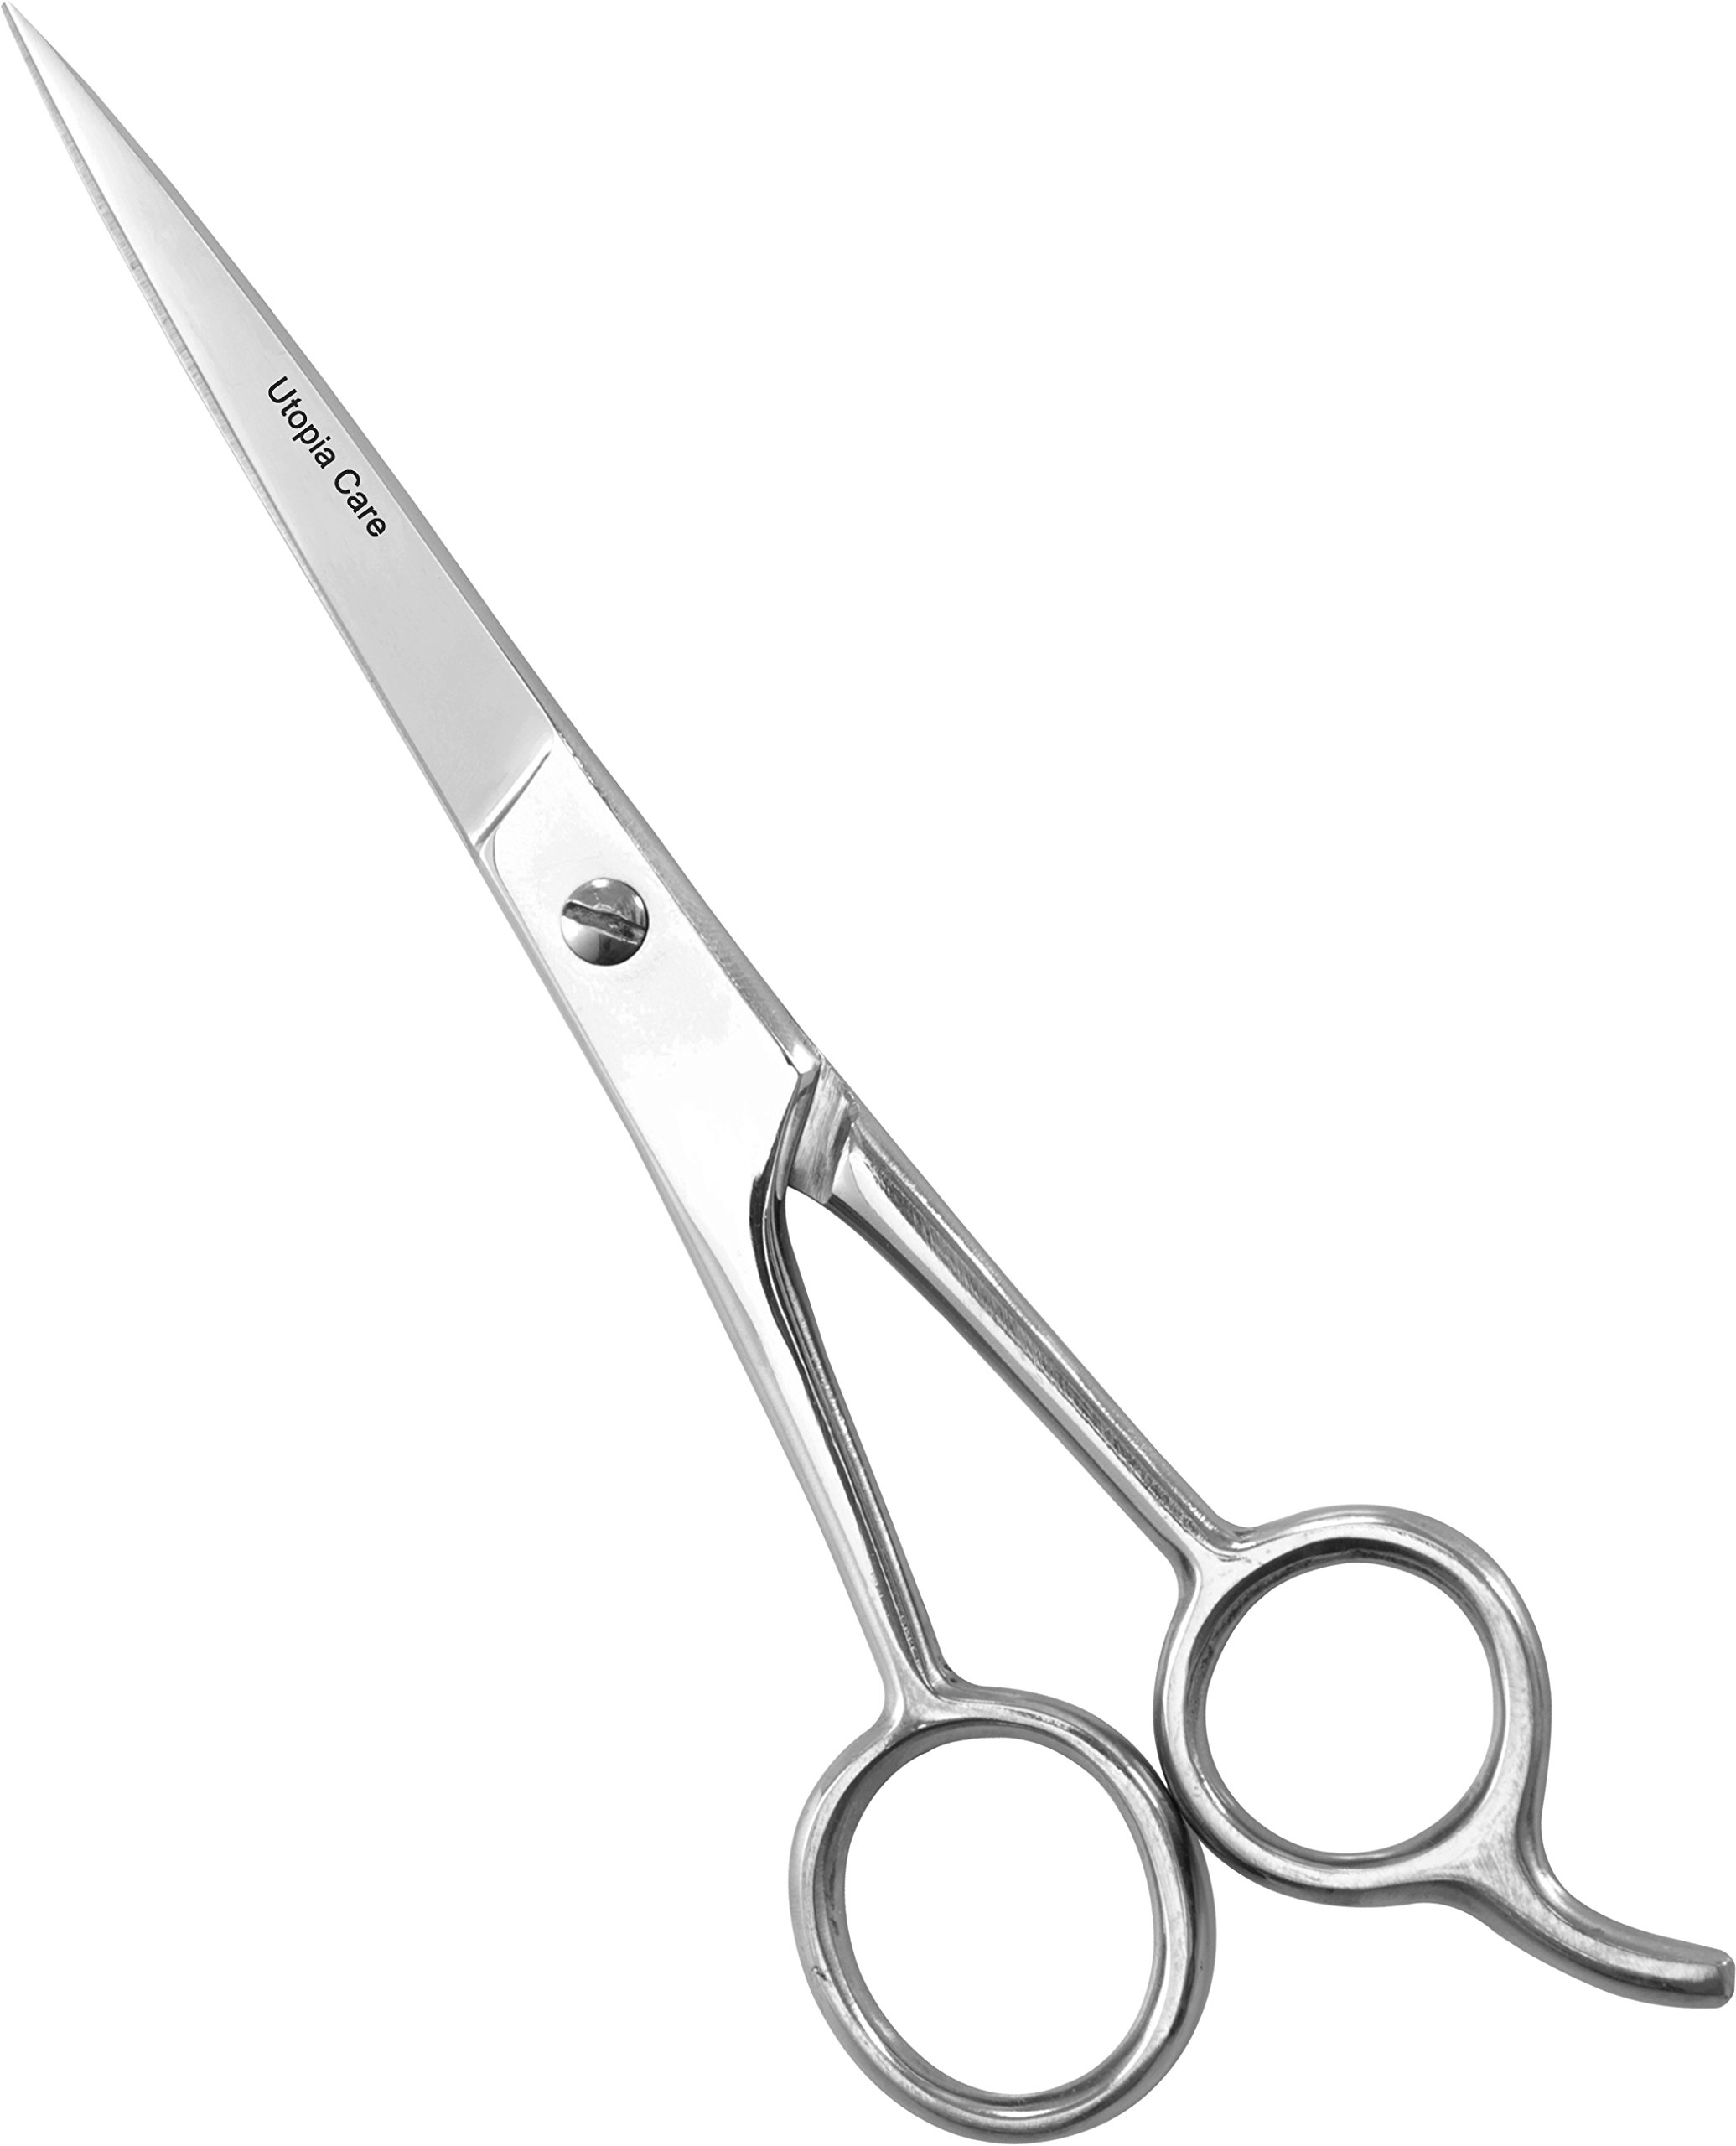 hair cutting scissors shears aerona beauty Aerona beauty is a manufacturing & export company selling beauty care instruments/manicure and pedicure implements like hair cutting scissors,cuticle nippers,hair thinning shears,professional nail nippers,cuticle nail scissors,heavy duty toenail cutters,arrow point nail nippers,nail clippers,cuticle pushers,blackhead removers,embroidery .